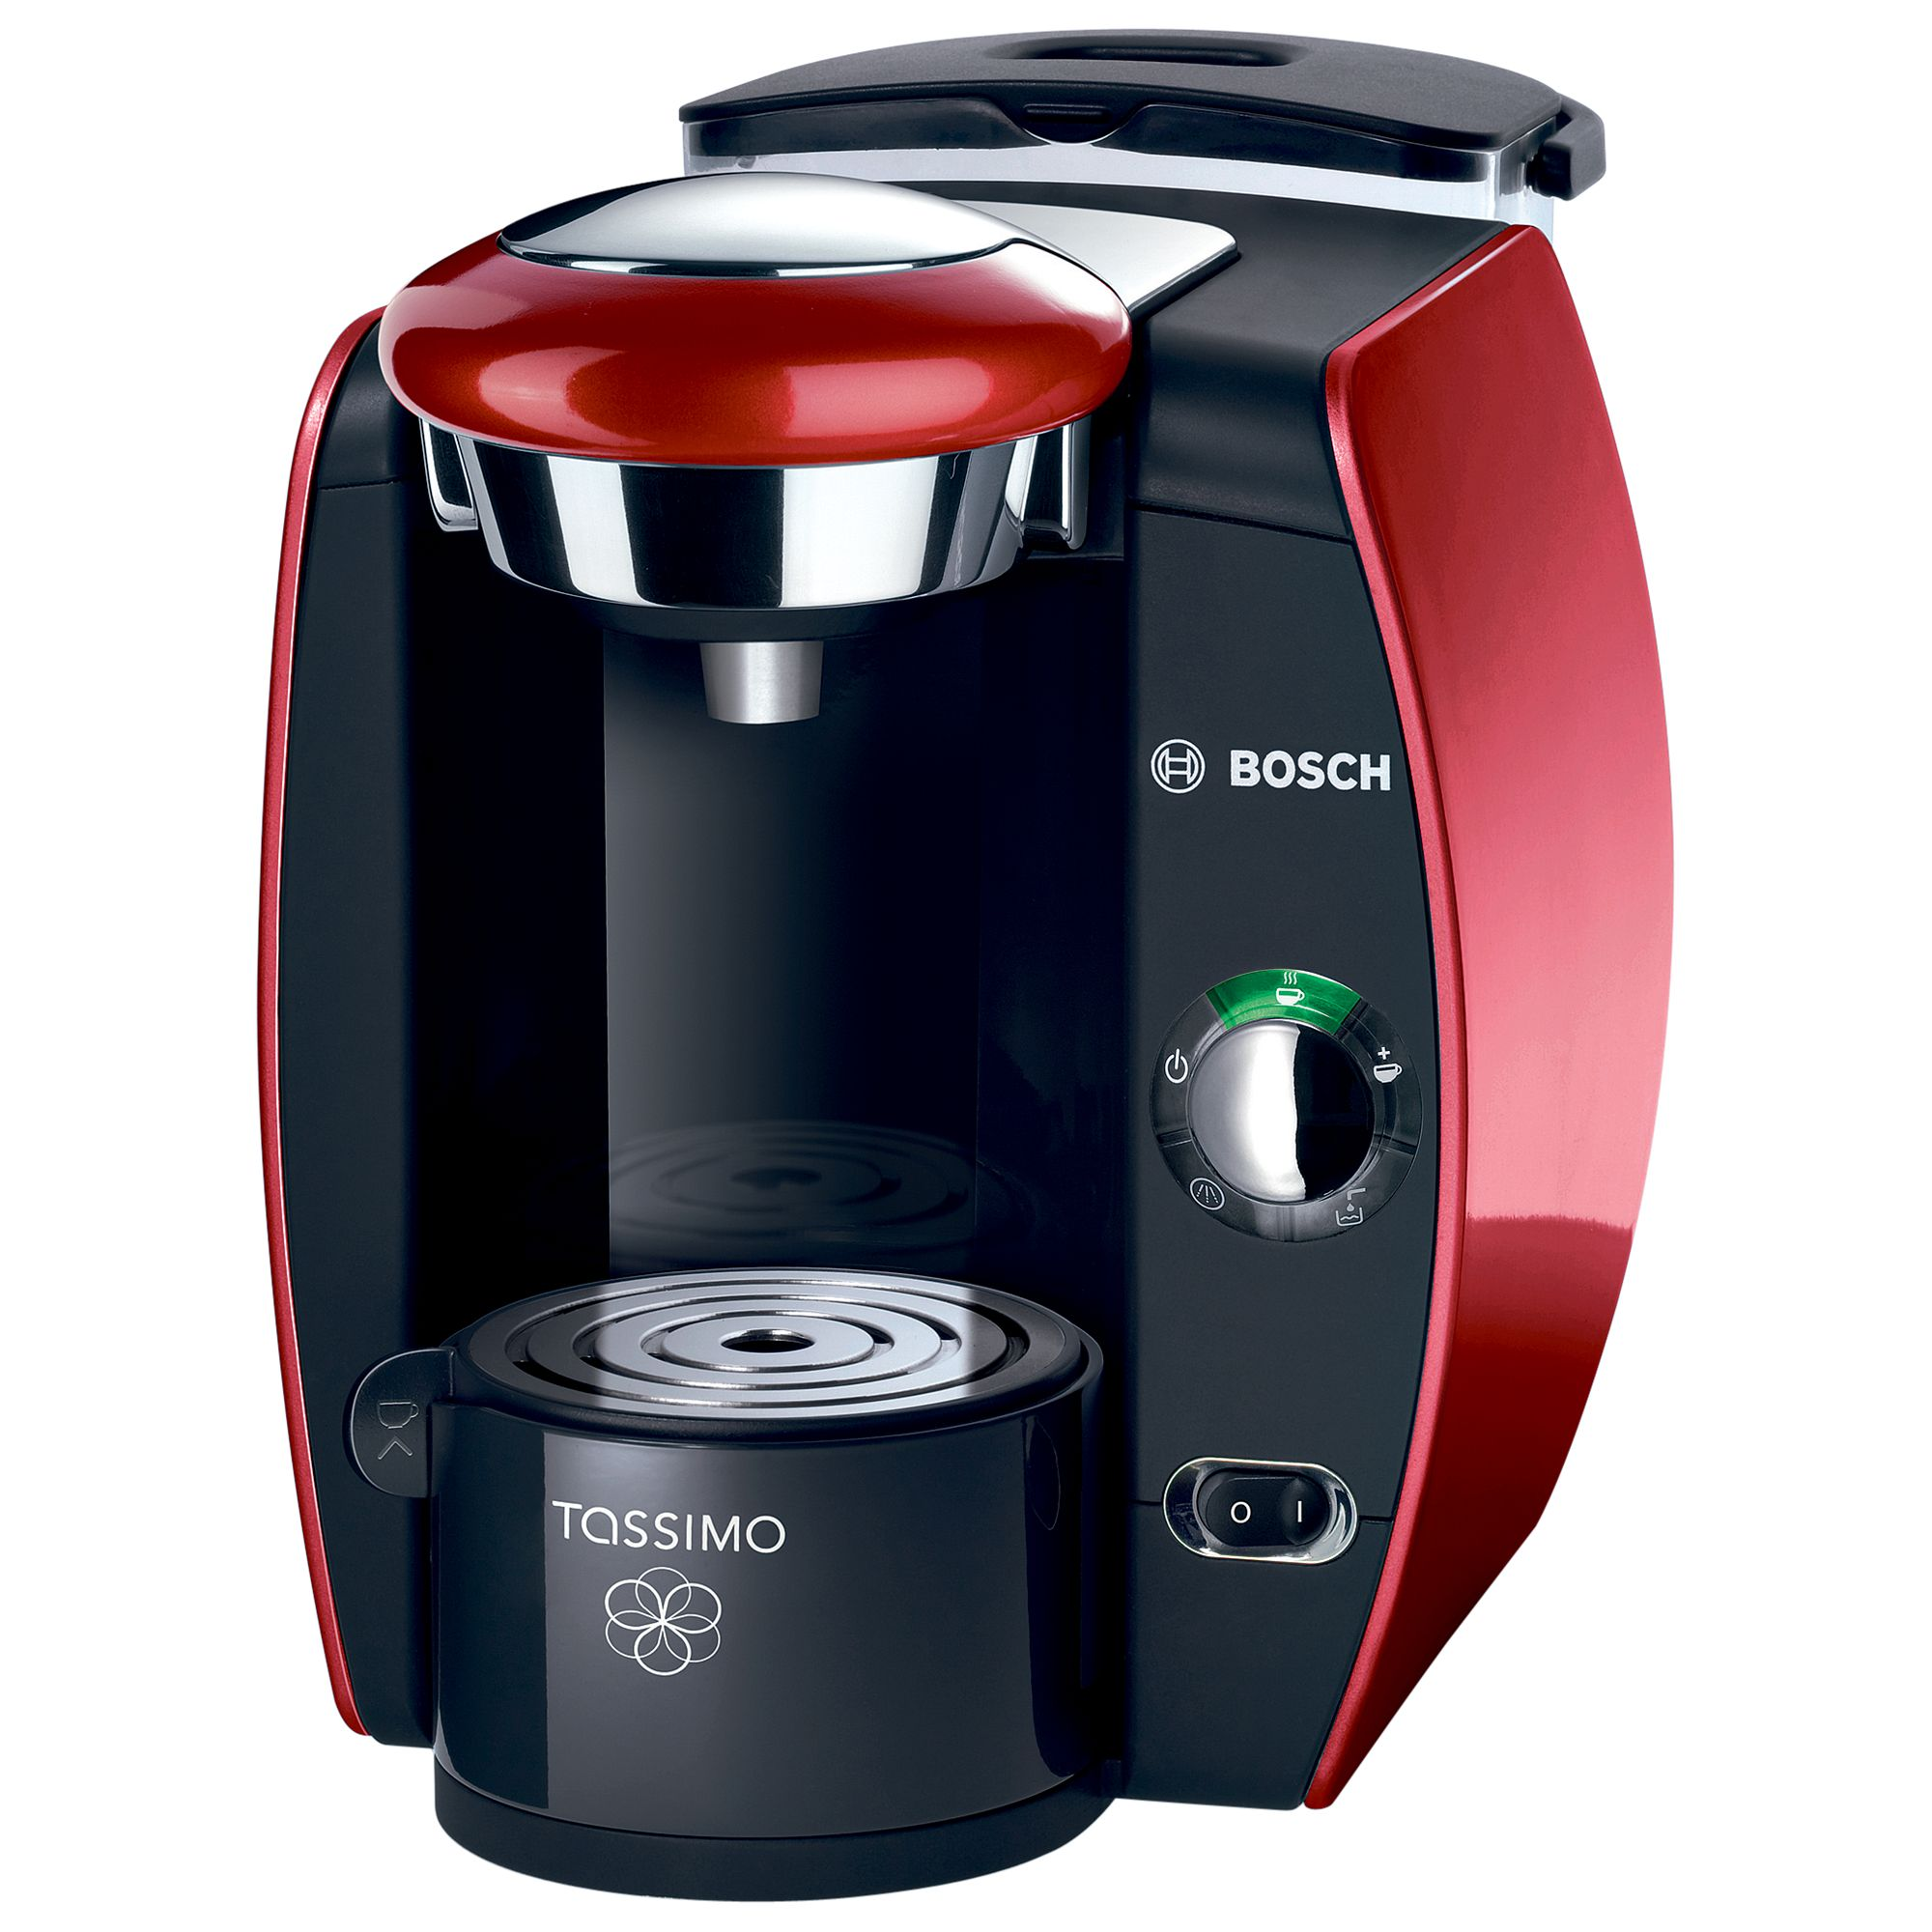 buy cheap bosch coffee maker tassimo compare coffee makers prices for best uk deals. Black Bedroom Furniture Sets. Home Design Ideas